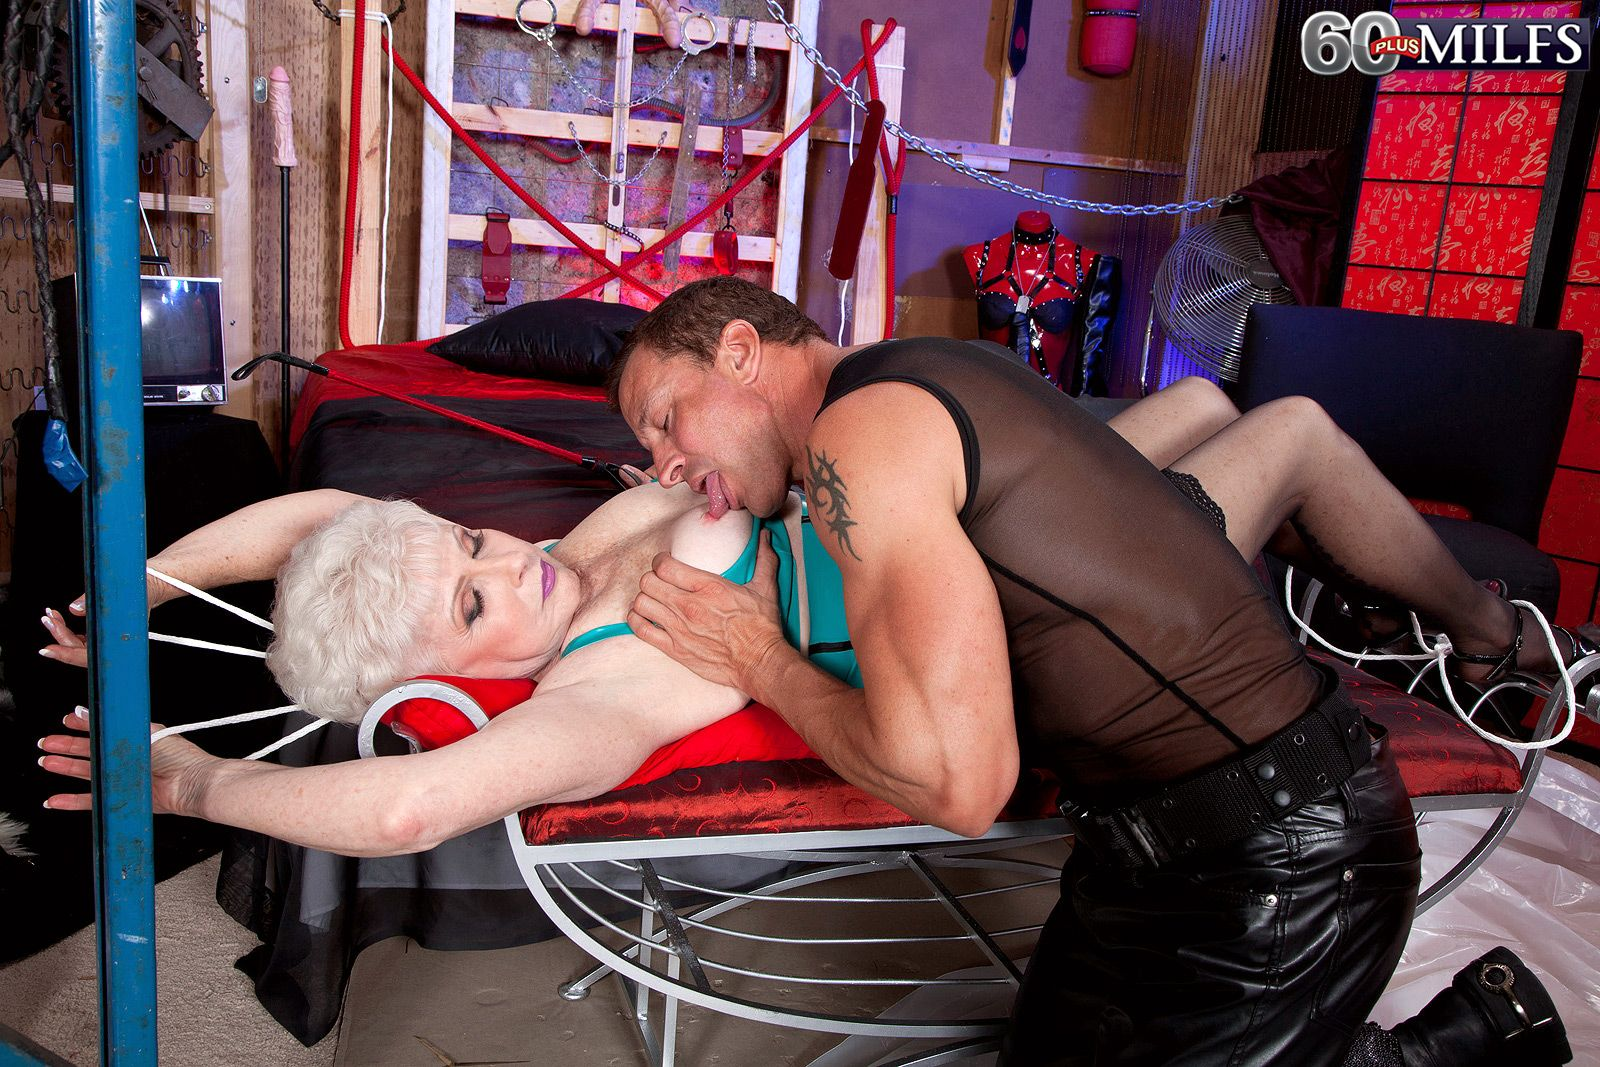 Hot 60 plus granny Jewel acts out her naughty mature BDSM porn fantasies